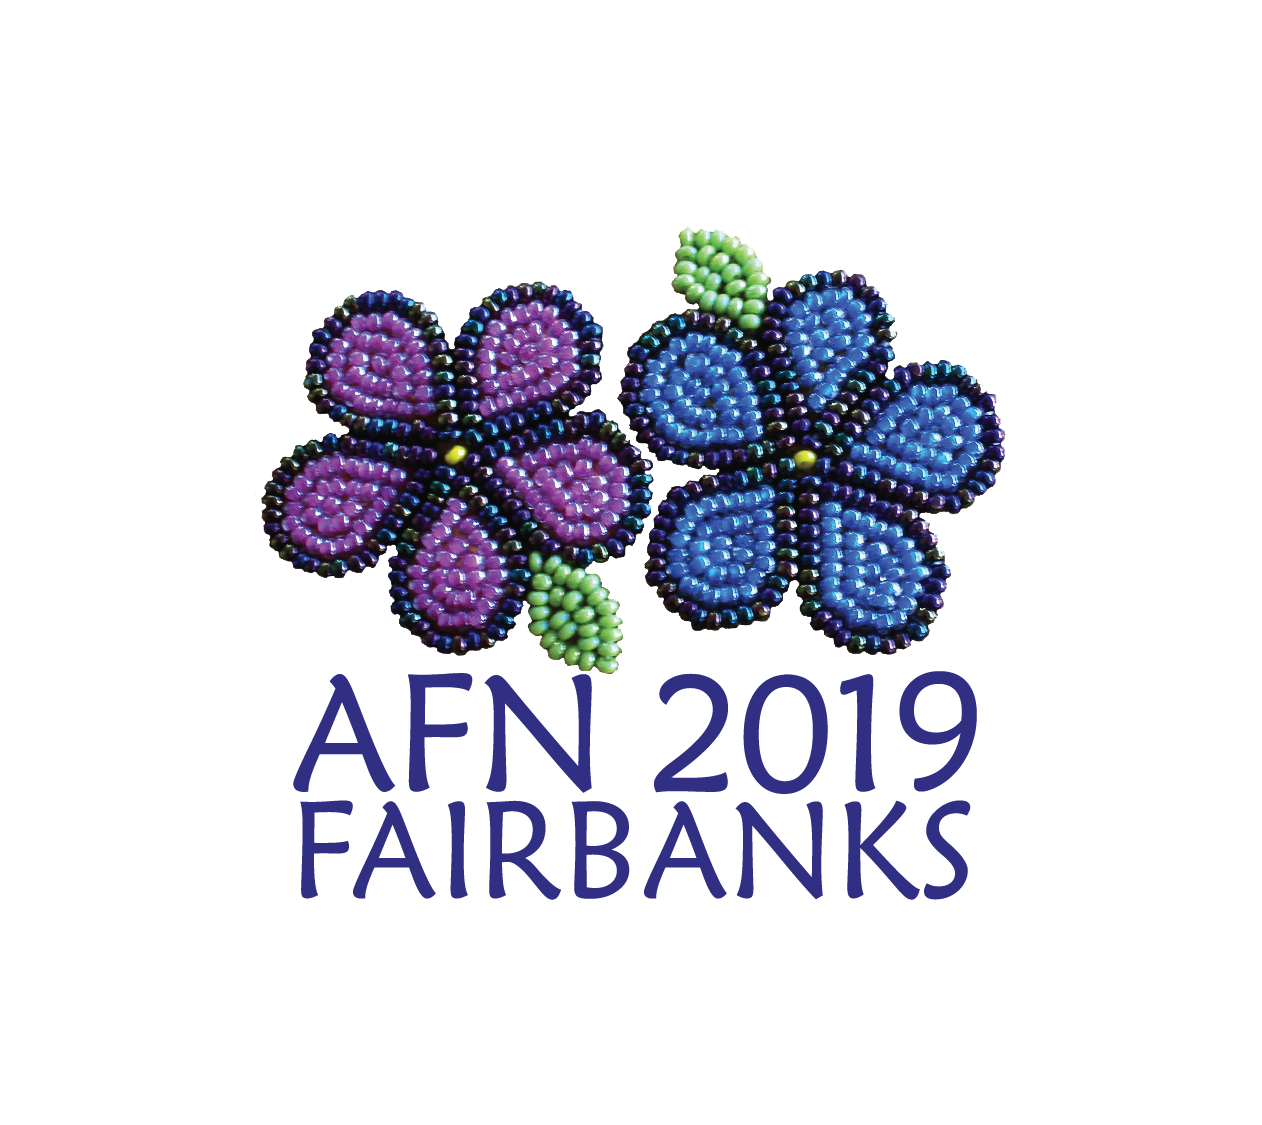 AFN Fairbanks